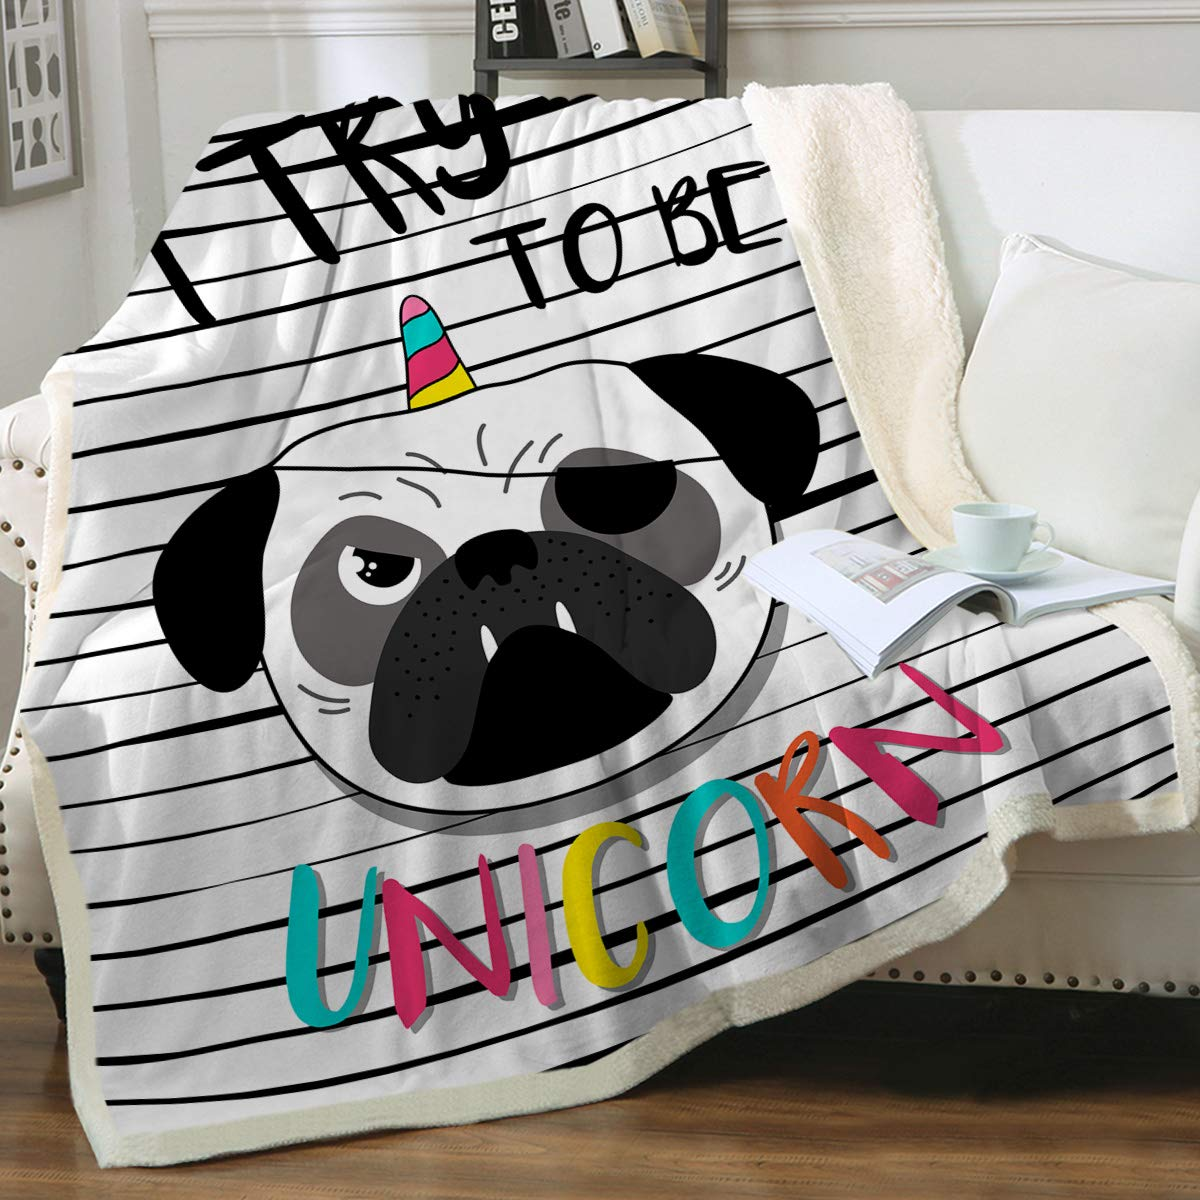 """Sleepwish Sherpa Fleece Bed Throw Pug Unicorn Black White Stripes Print Soft and Fuzzy Plush Blanket Gifts for Pet Animals Puppy Dog Lovers Twin(60""""x80"""")"""